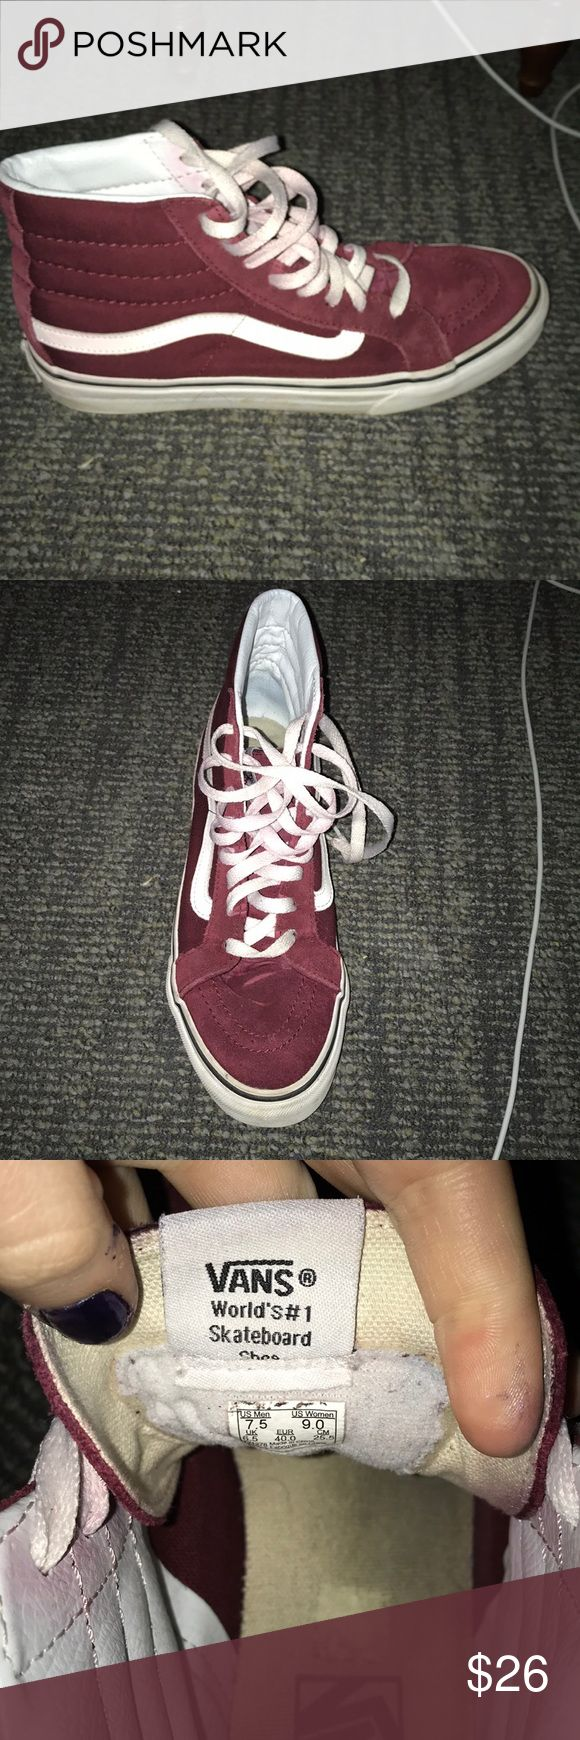 Red high top vans Red high too vans. Barely worn and in good used condition. Men 7.5 women's 9 Vans Shoes